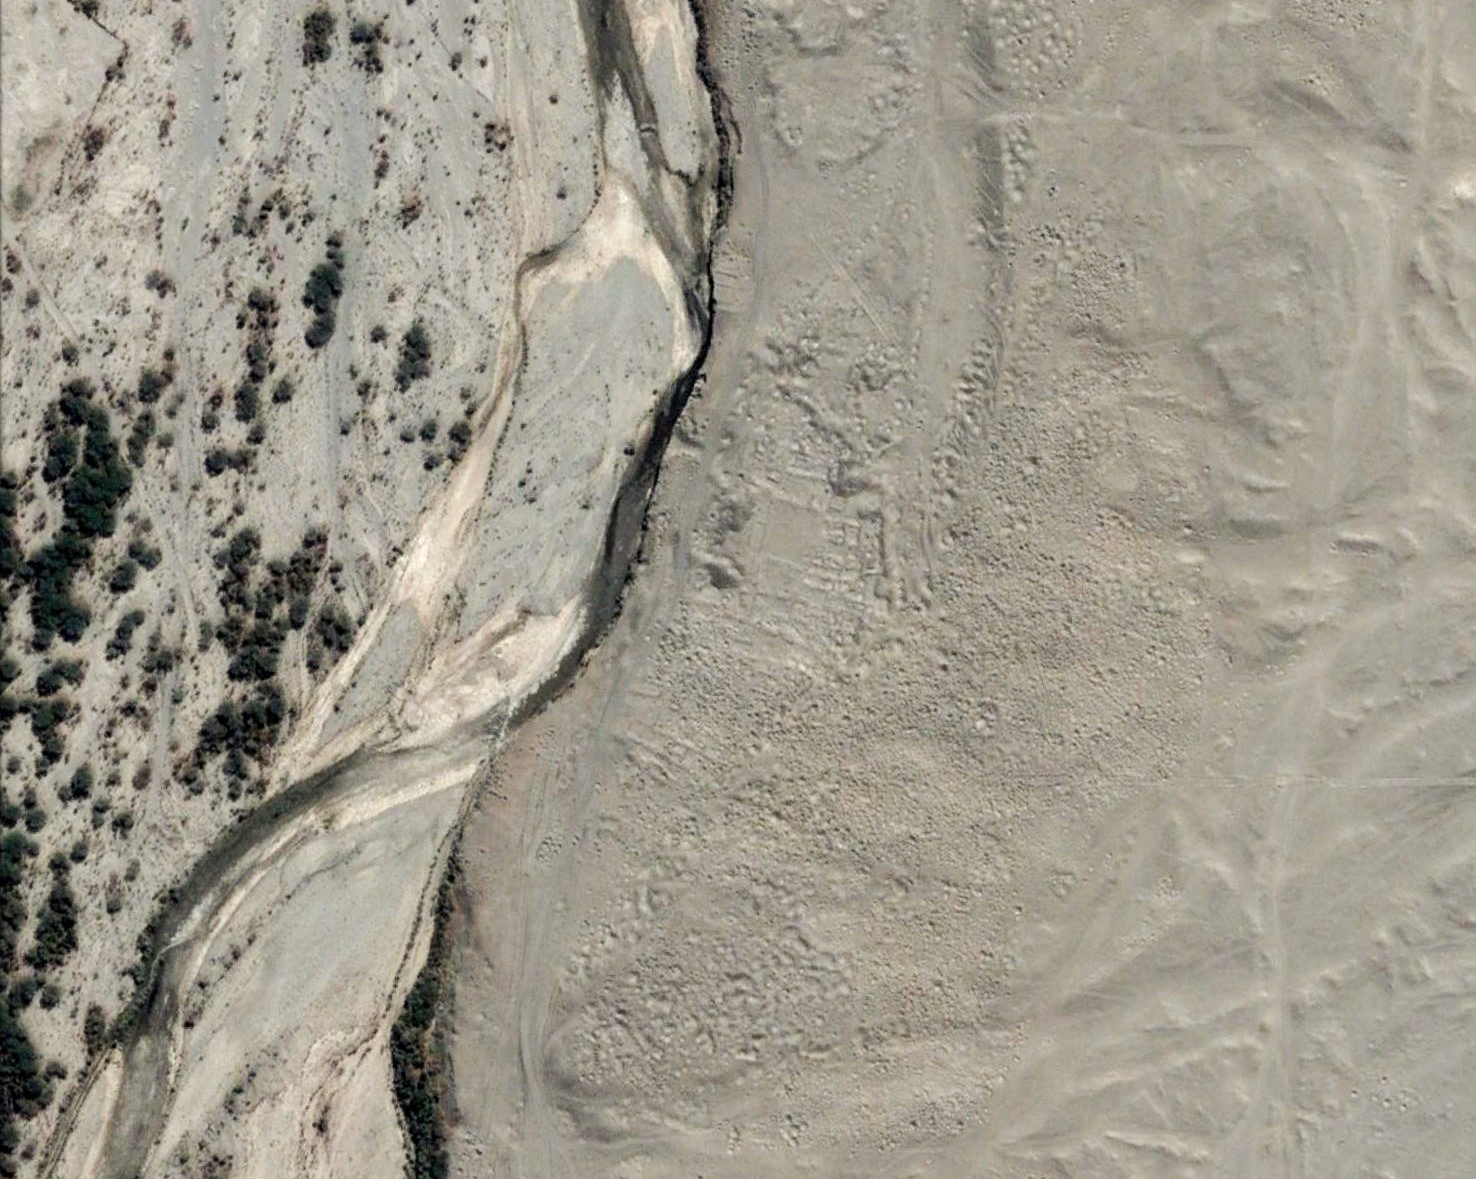 A looted town in the Nazca Dessert. Image copyright Digital Globe.